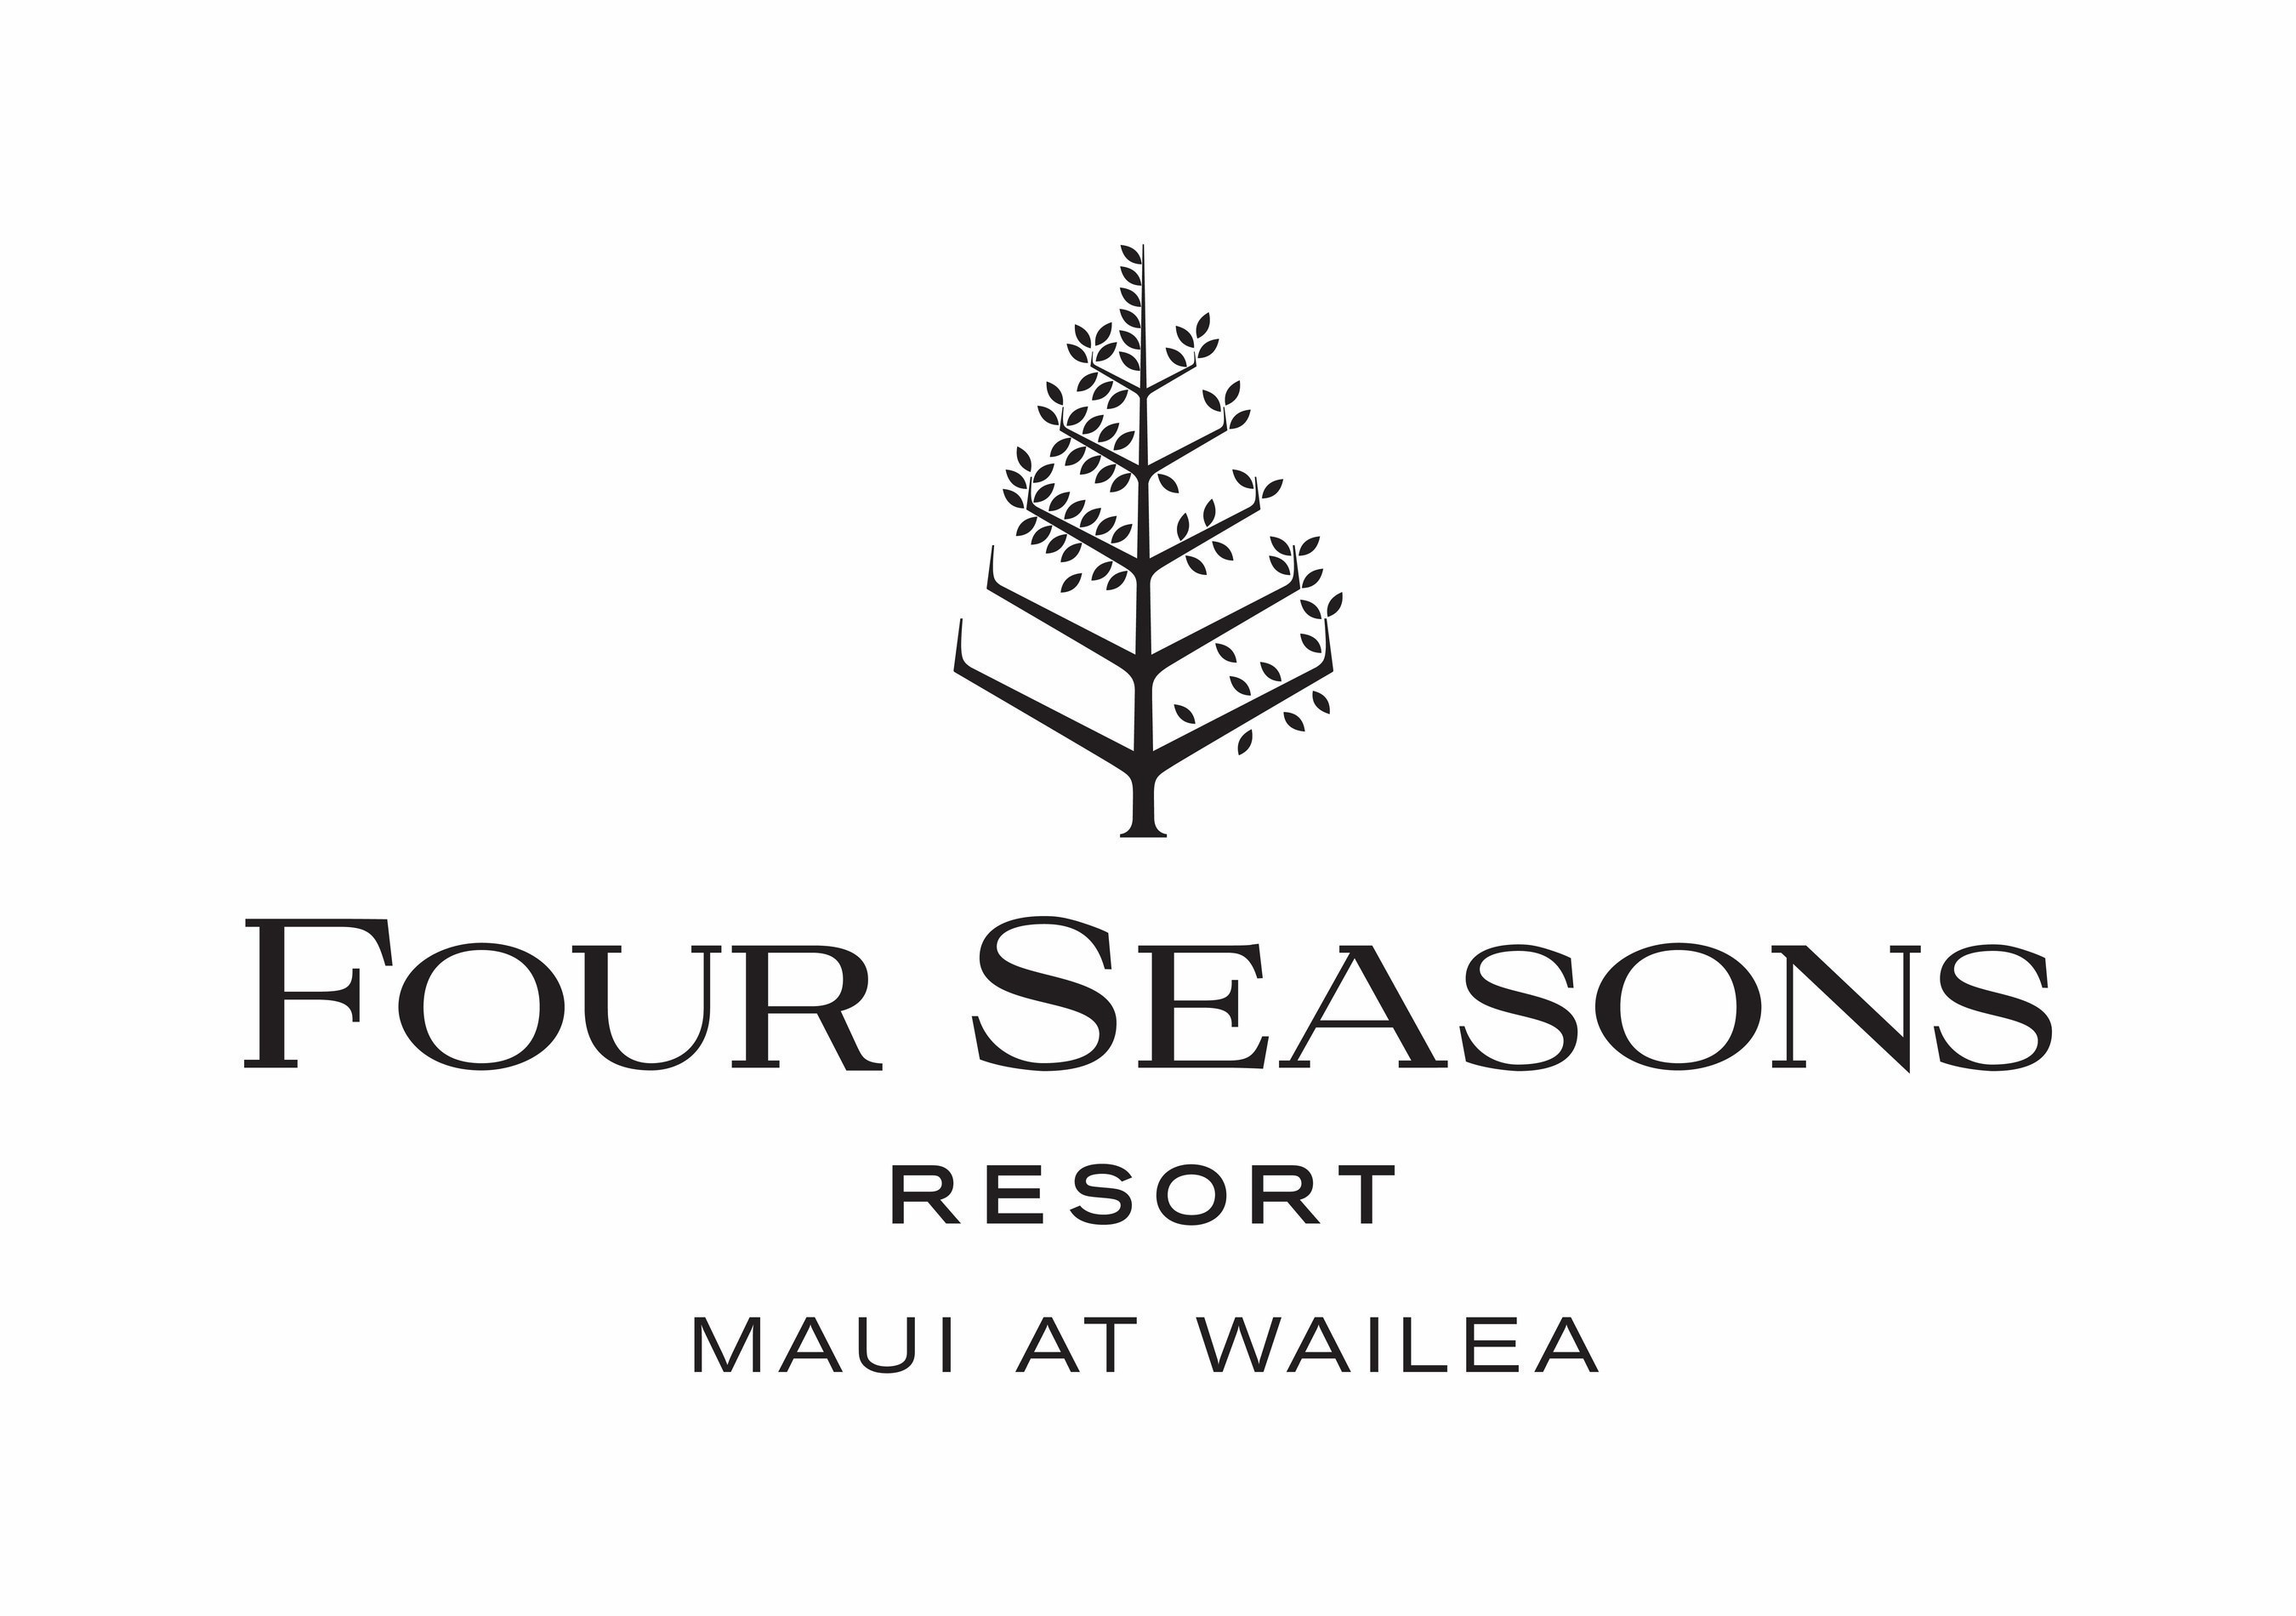 marketing analysis four seasons hotel hong kong Find thousands jobs at and apply your favouraite job in hotel and club or hospitality related companies at recruitcomhk, which is a leading job site in hong kong that offers thousands of job openings, career advice, salary index and interviewee tips.